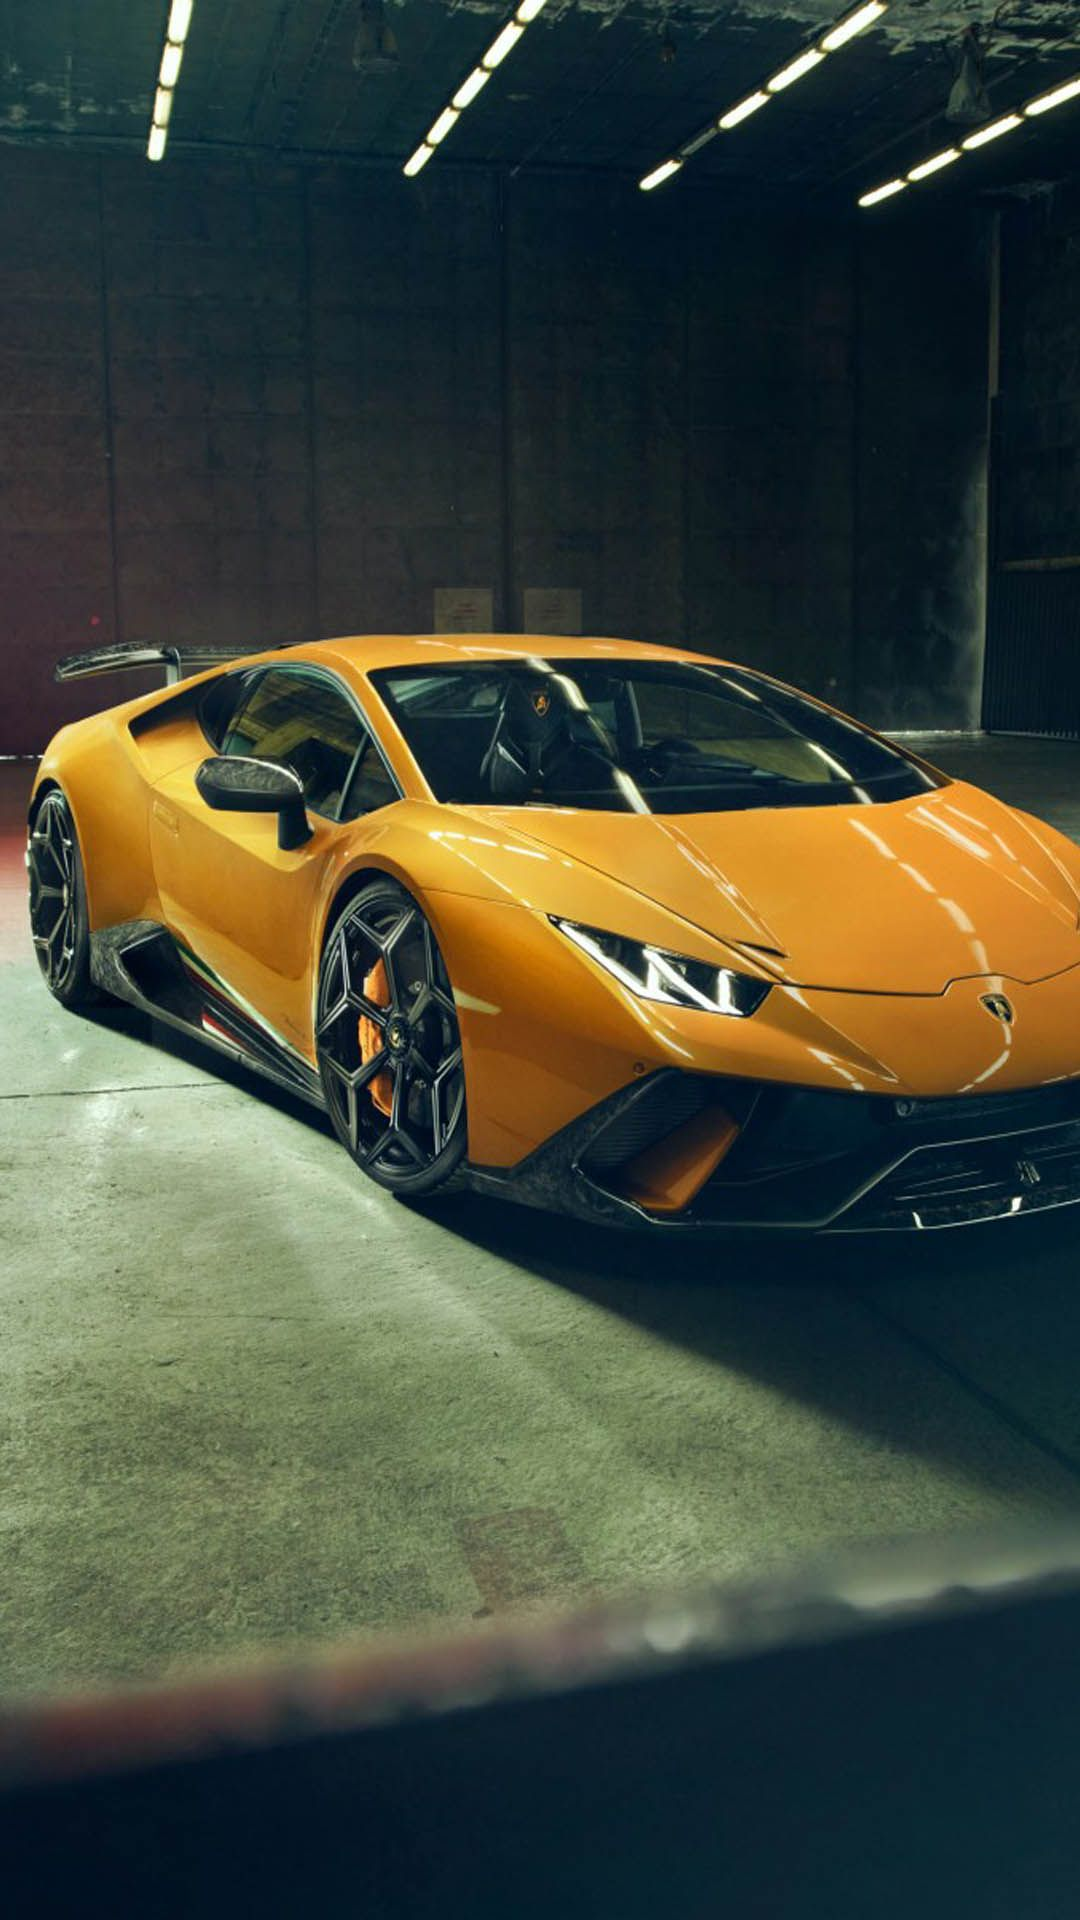 Yellow Lamborghini Huracan Performante 4k Ultra Hd Mobile Wallpaper Lamborghini Huracan Super Luxury Cars Lamborghini Cars